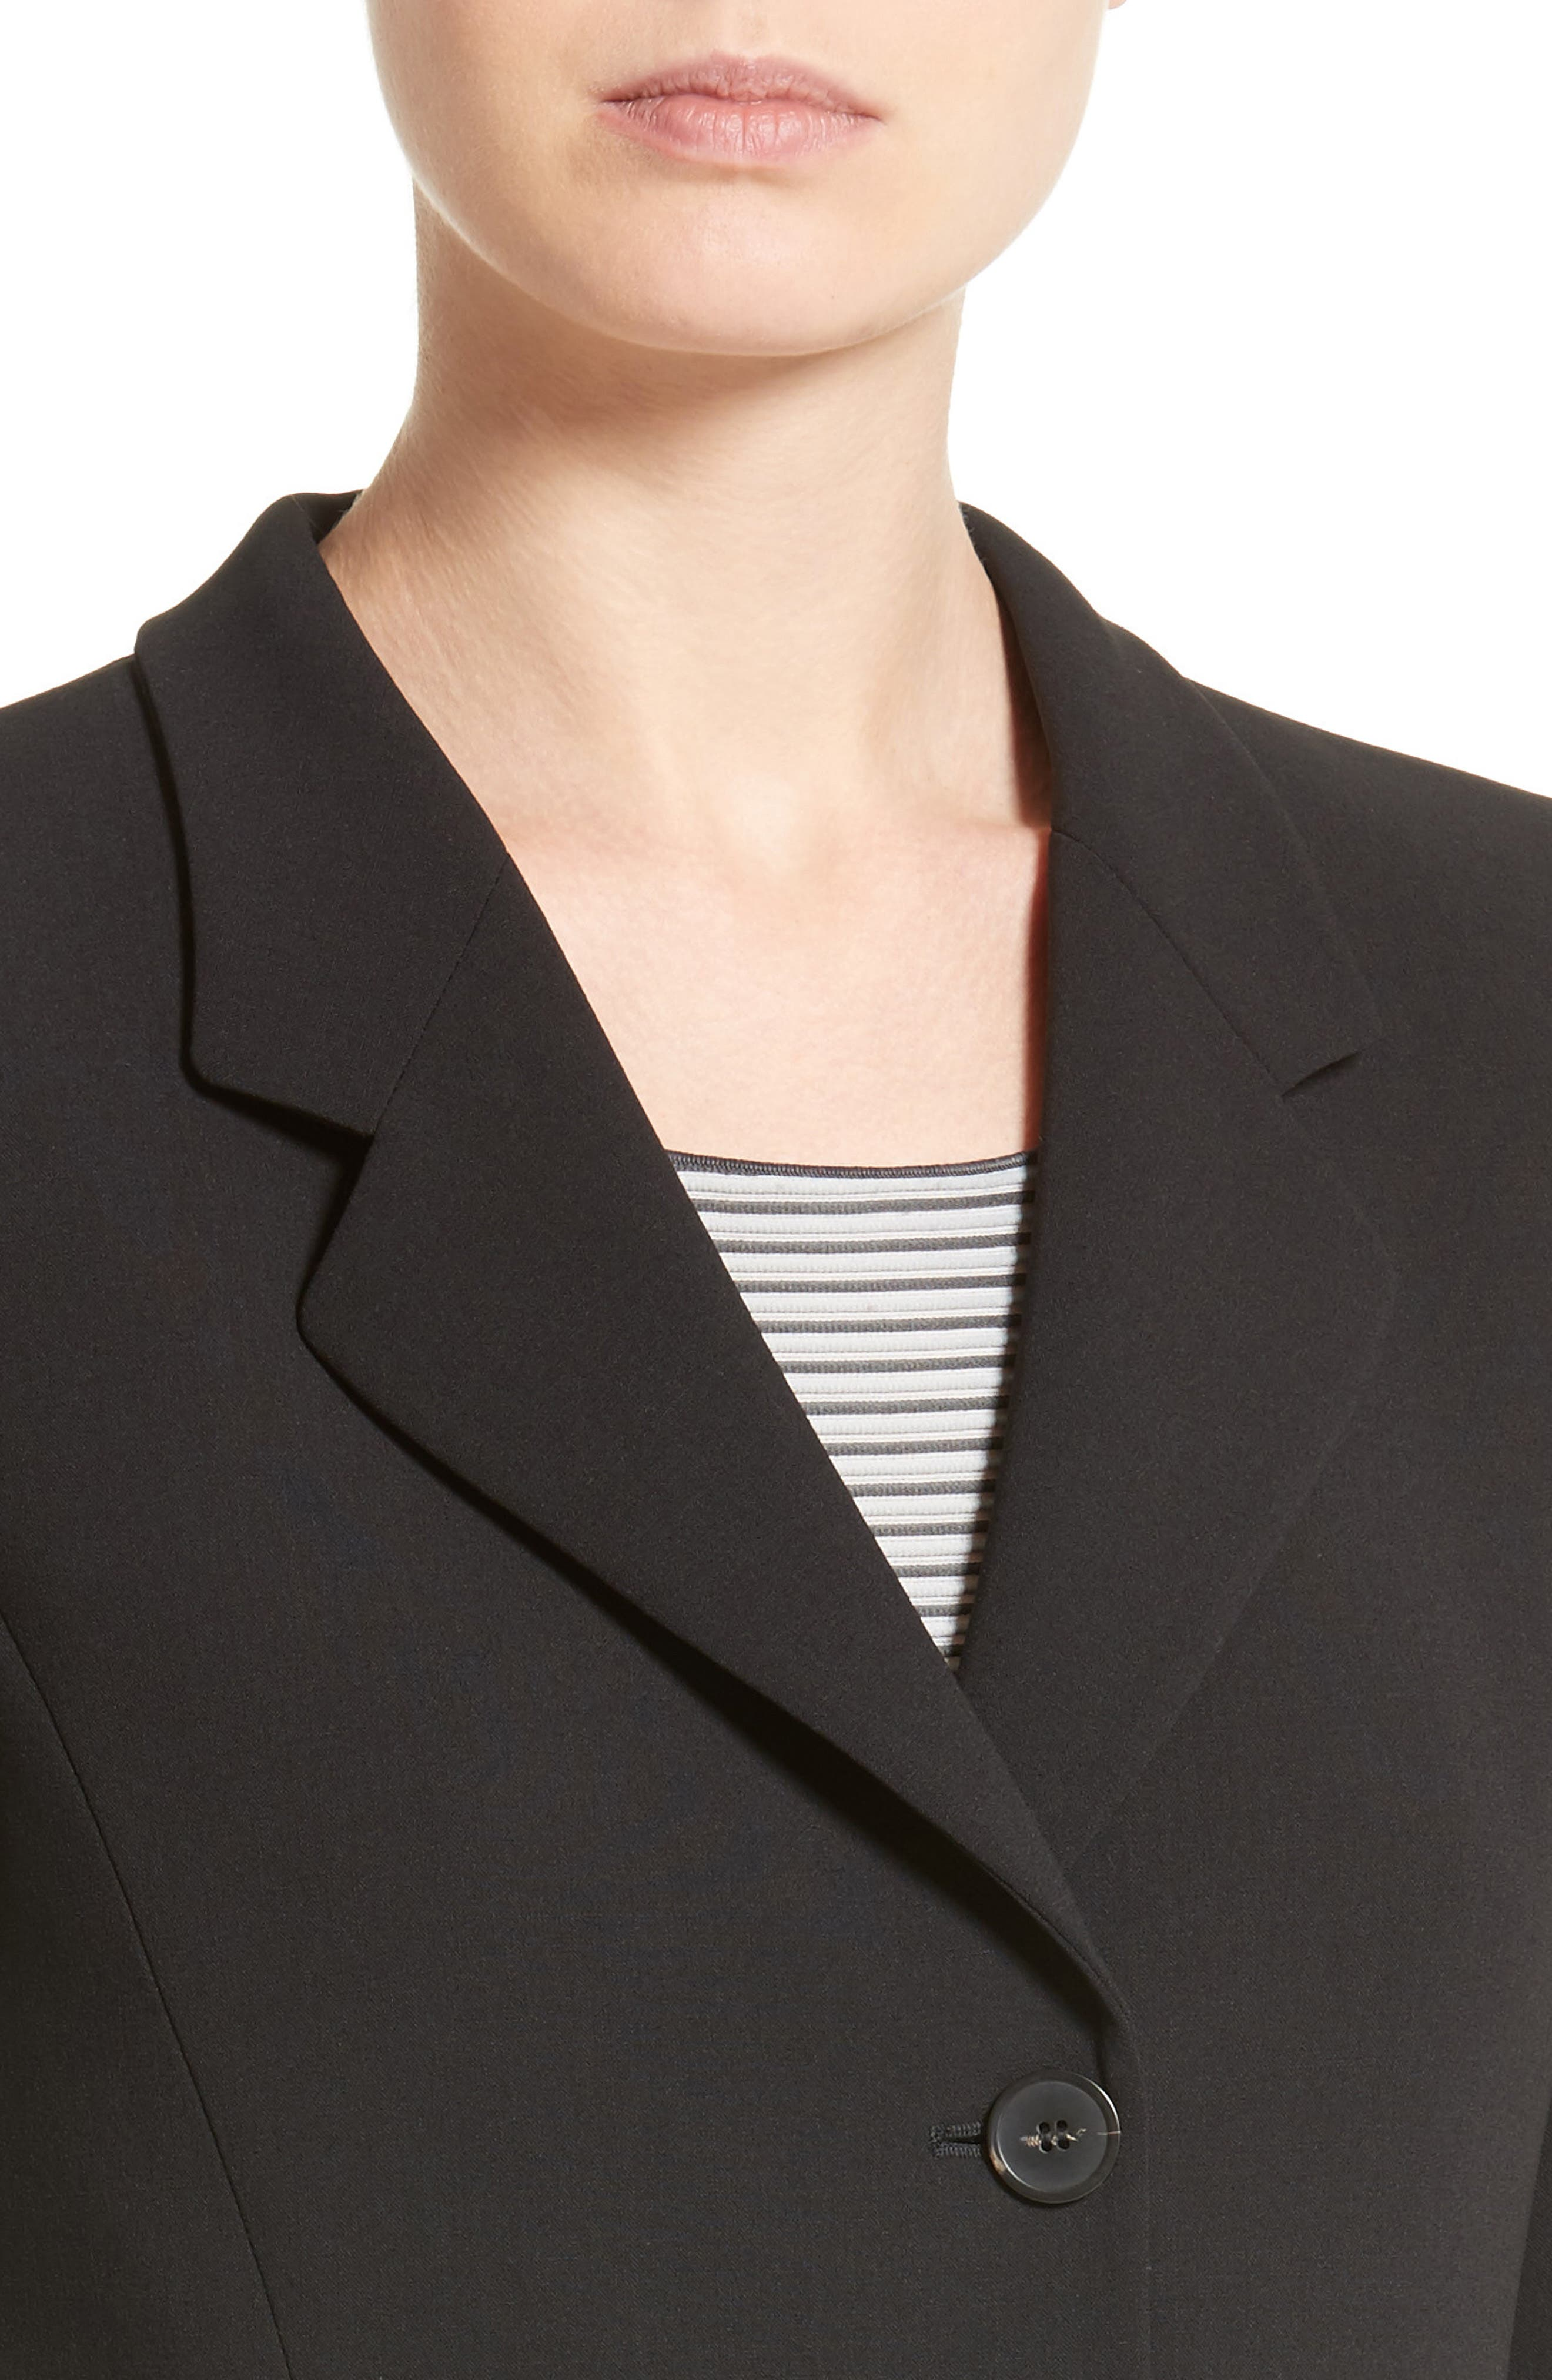 Stretch Wool Jacket,                             Alternate thumbnail 4, color,                             004